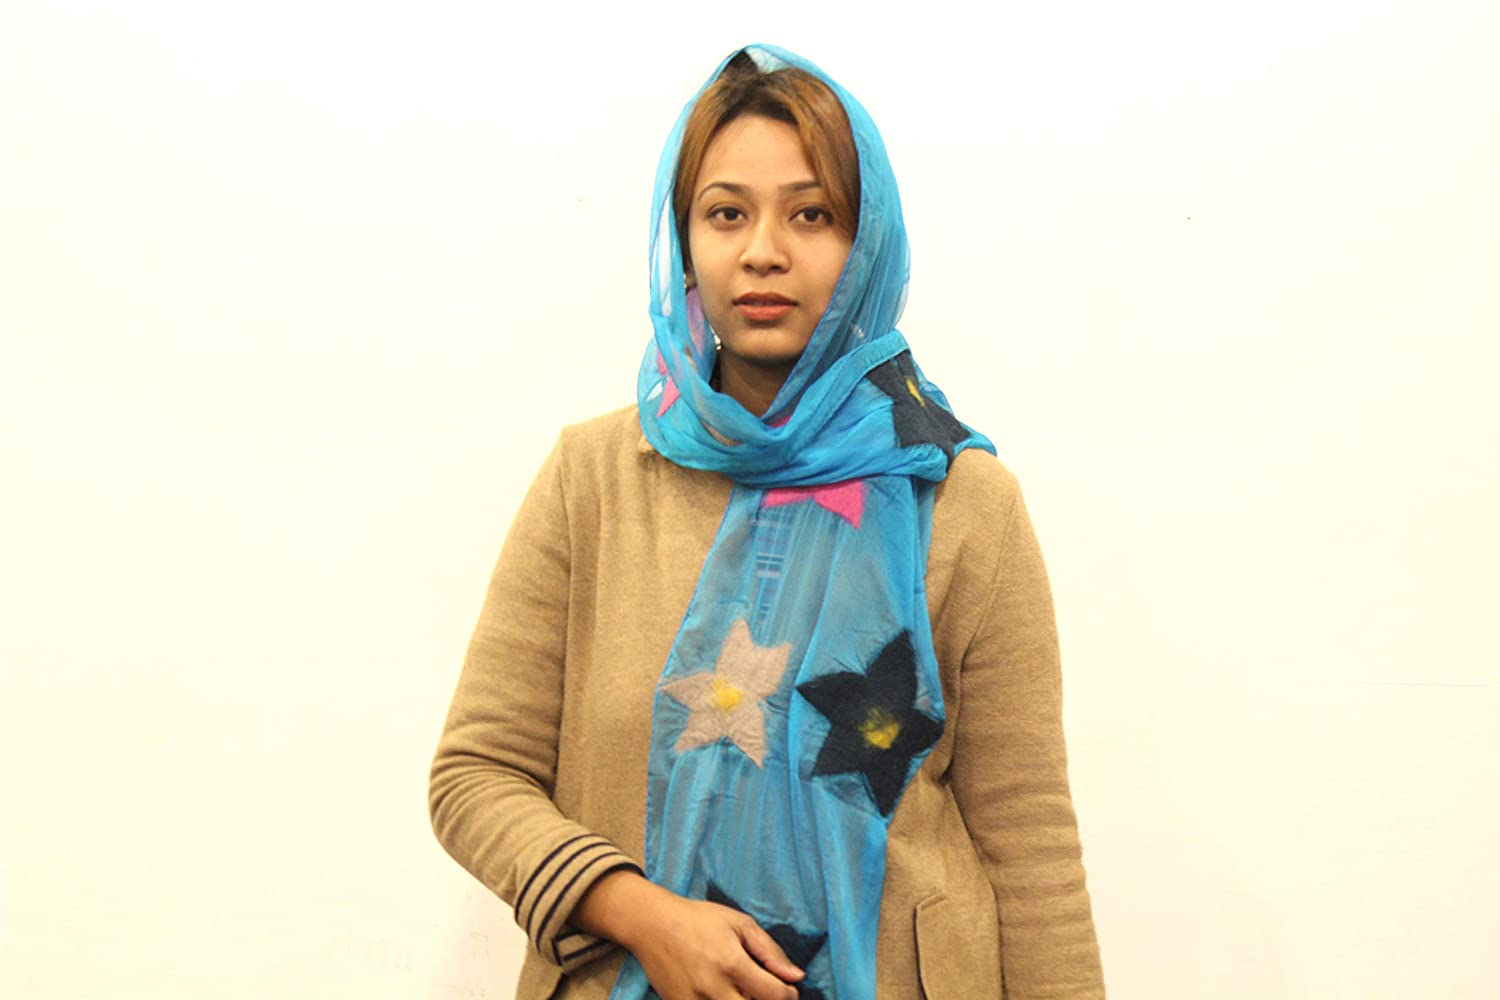 Handmade Unique Scarves From Nepal Woollyfelt Silk Felted Scarf-Stay warm and cozy with this beautiful Shawal-Winter Shawal-Blue color Scarf